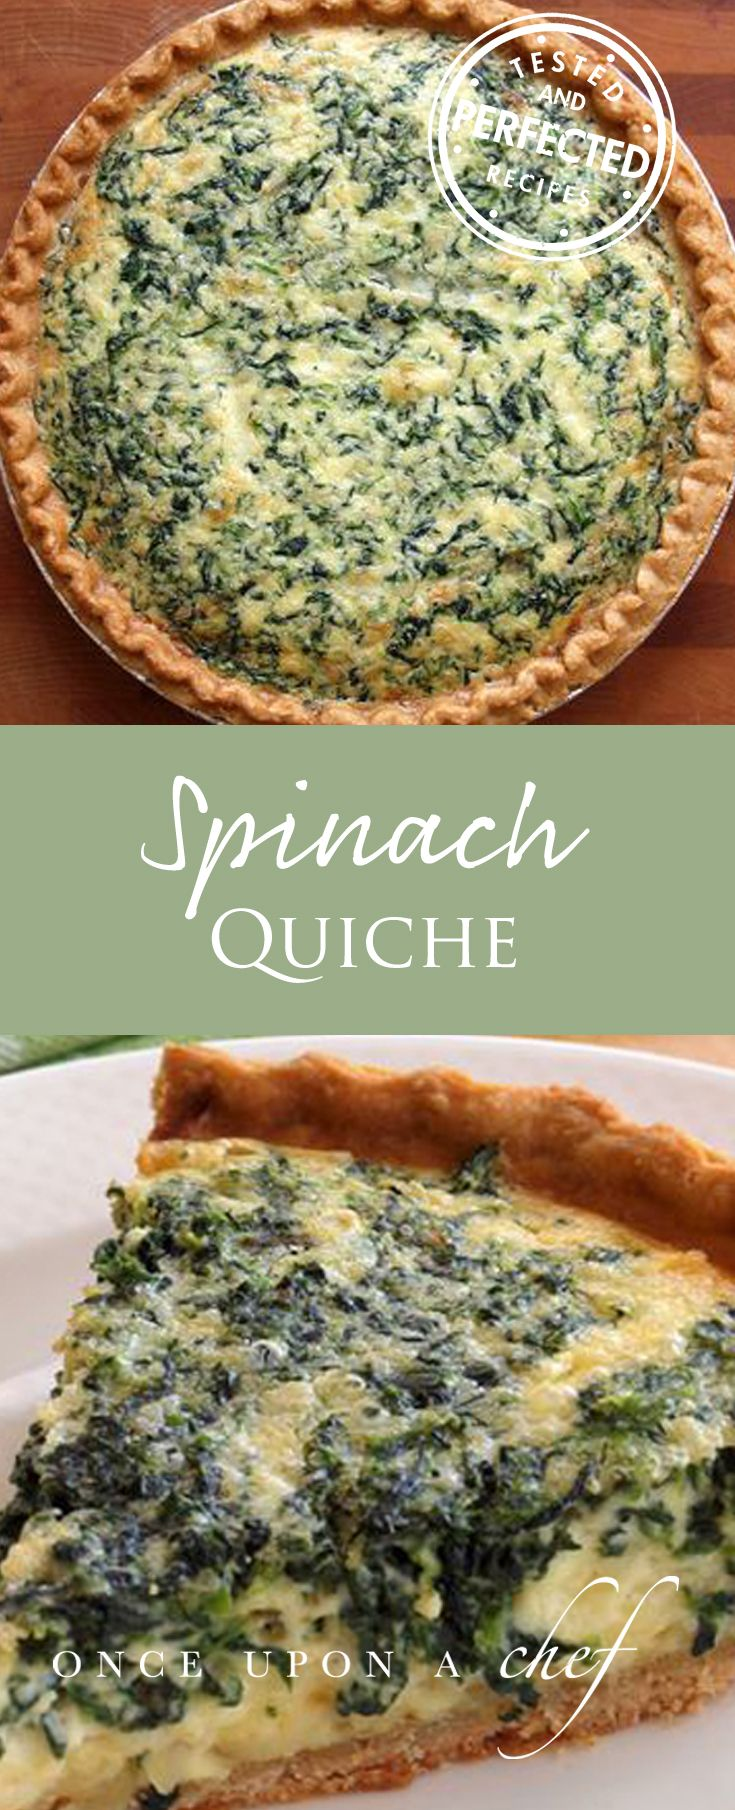 Classic French Spinach Quiche Once Upon A Chef Recipe Breakfast Brunch Recipes Quiche Recipes Recipes